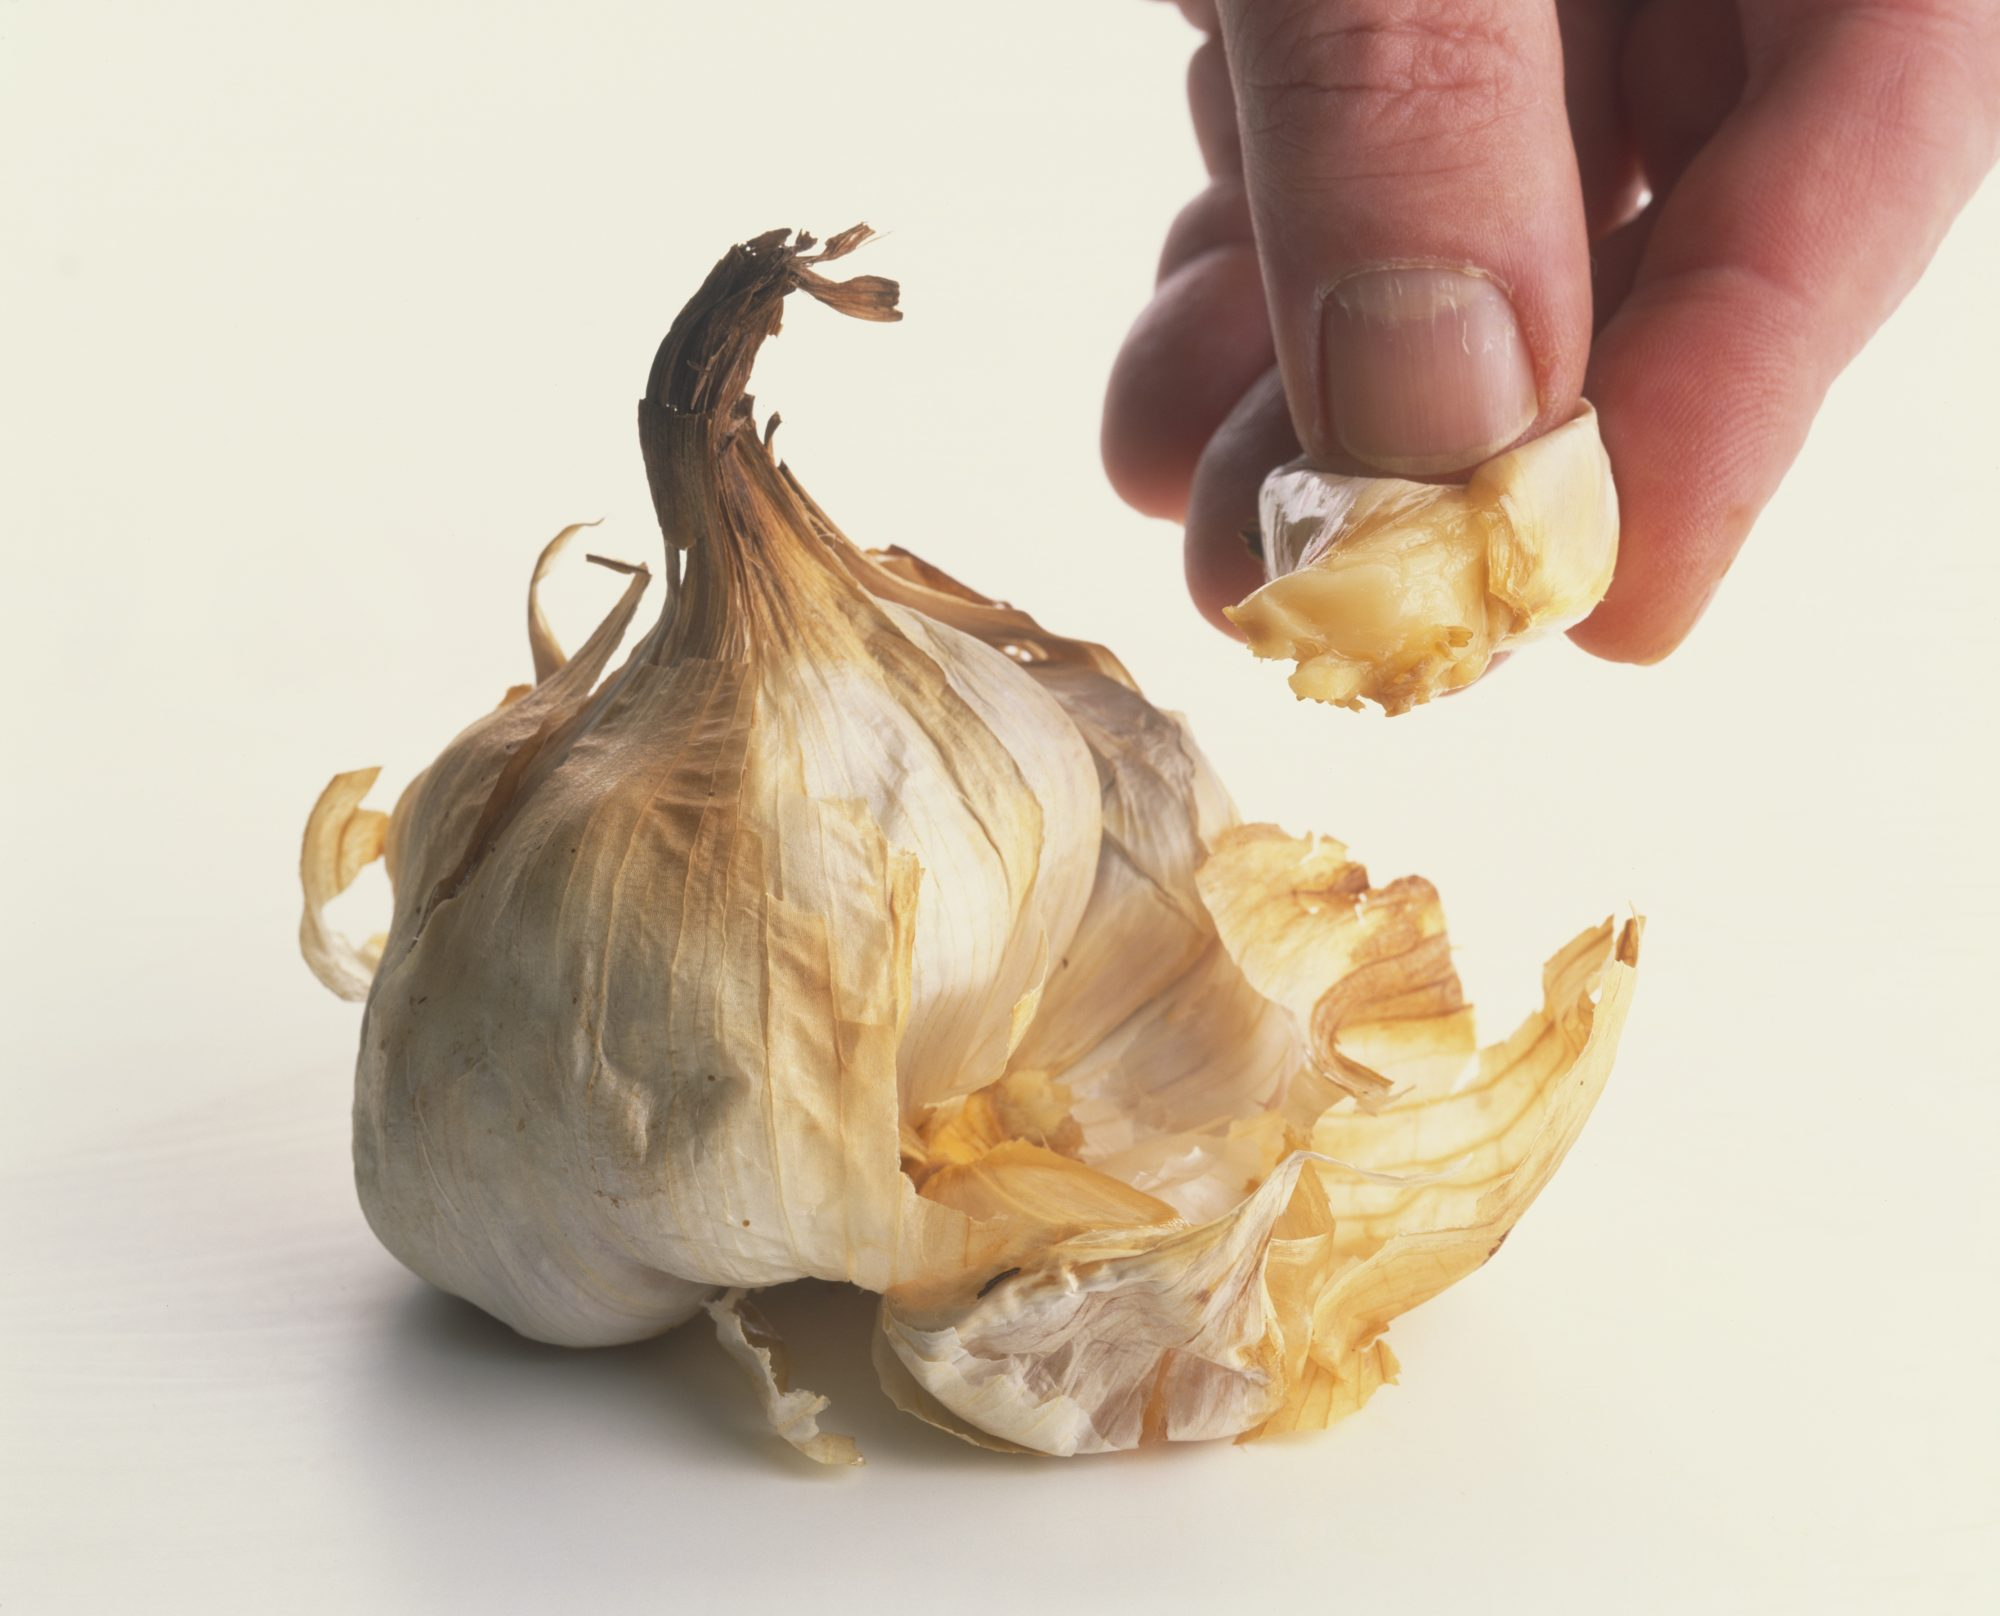 head of roasted garlic